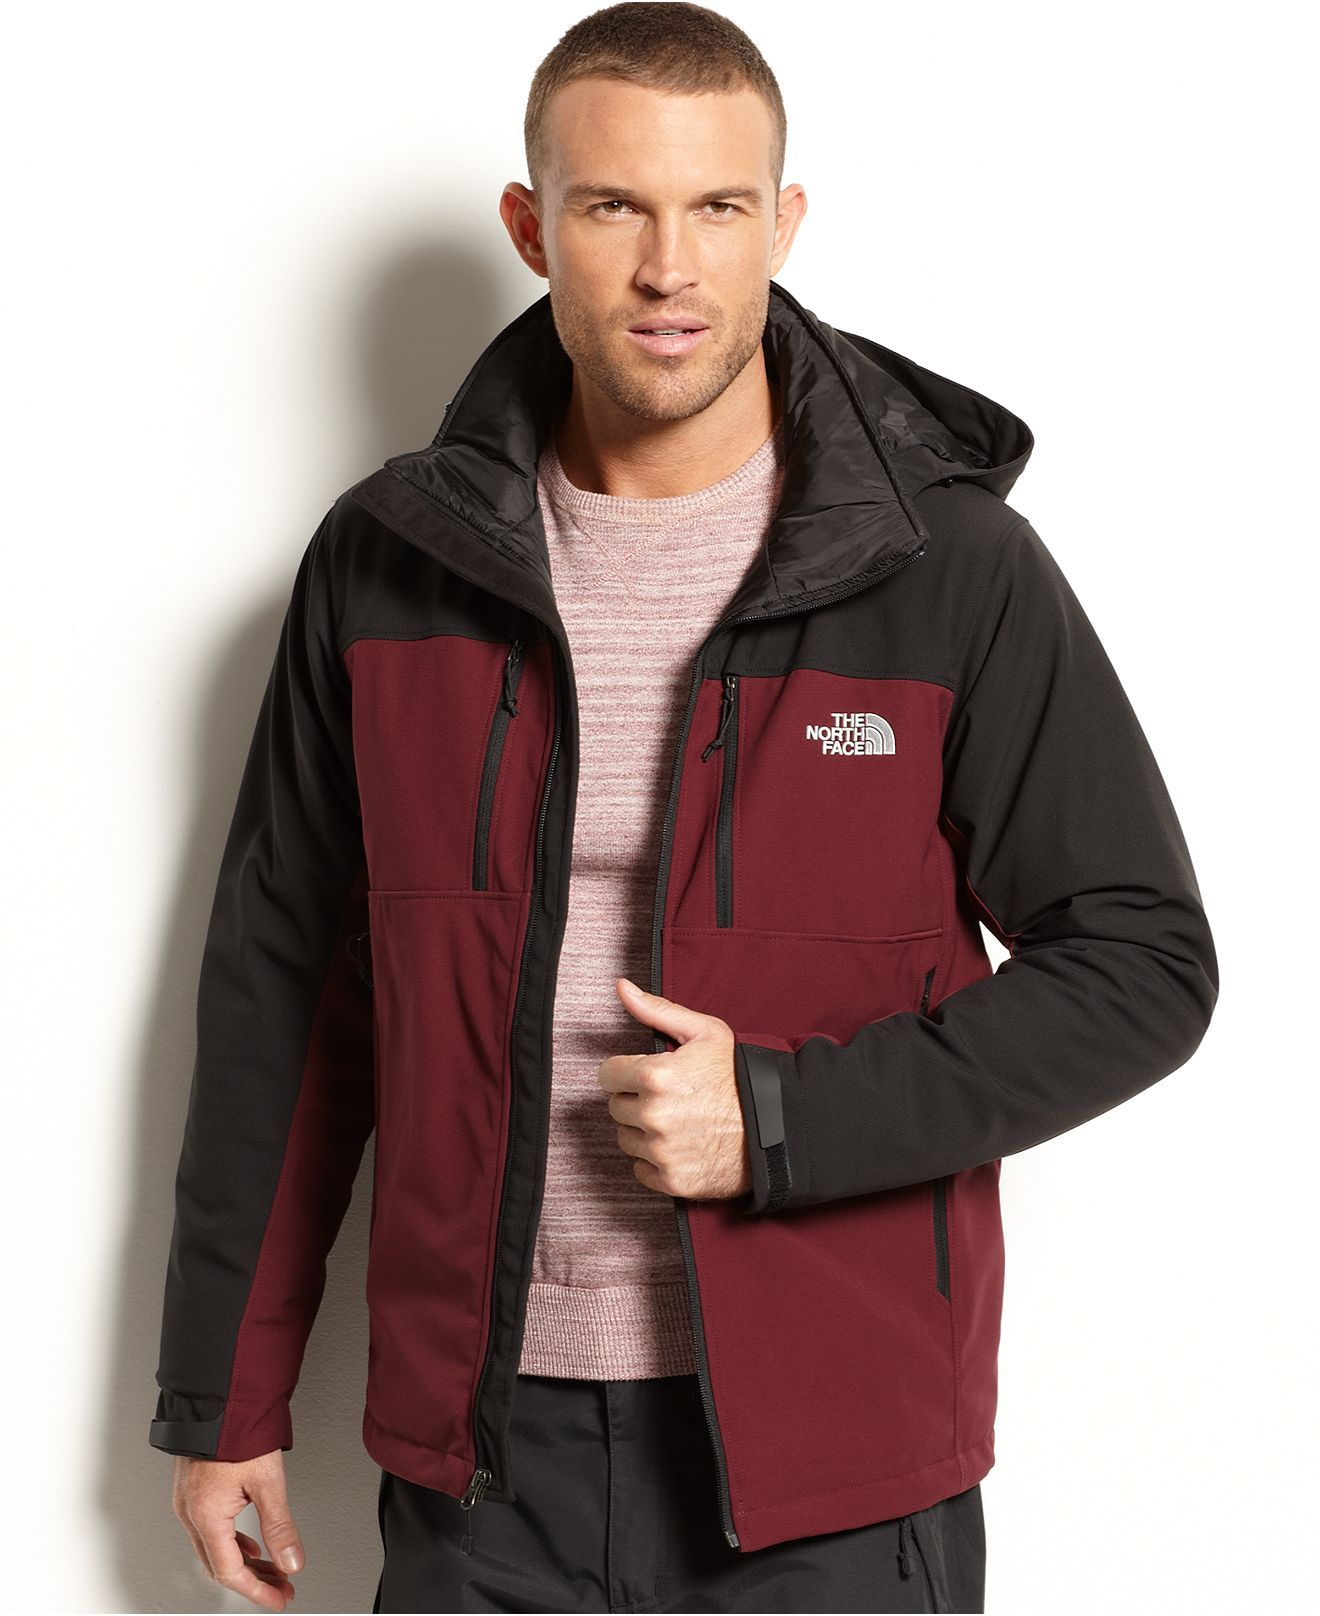 The North Face Jacket Apex Elevation Insulated Jacket Coats Jackets Men Macy S North Face Jacket Insulated Jackets Men S Coats And Jackets [ 1616 x 1320 Pixel ]